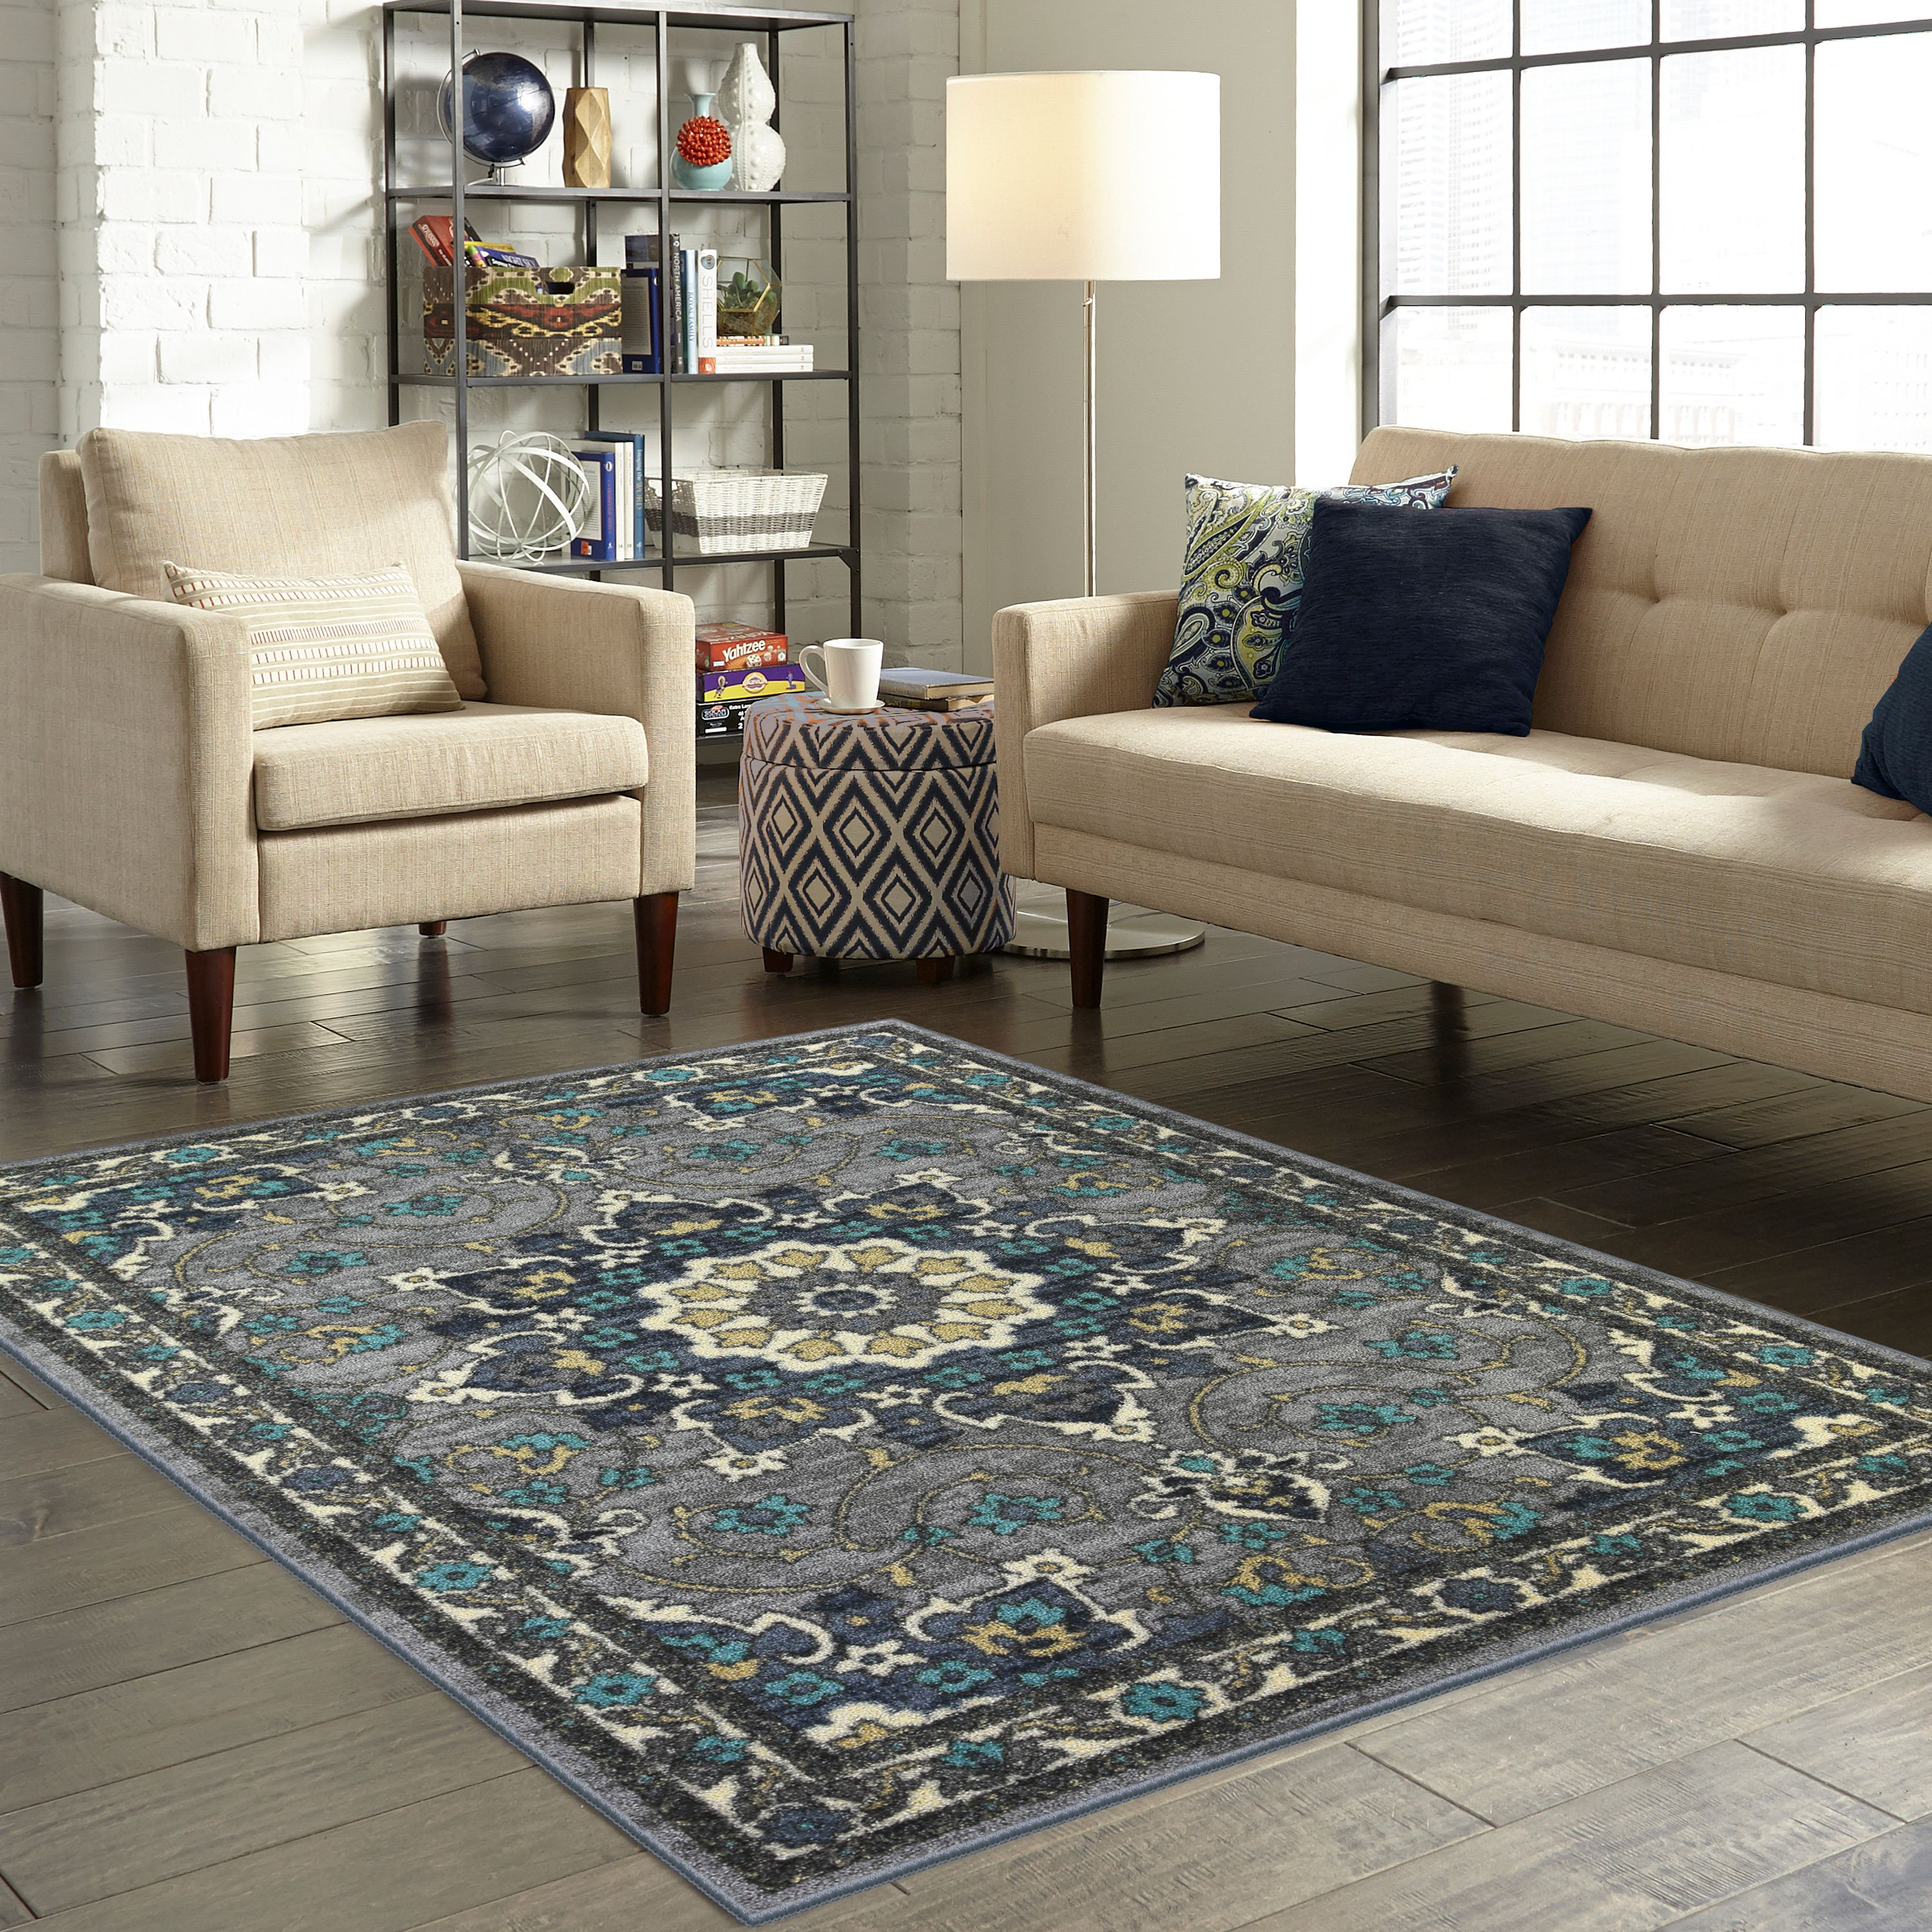 Mainstays Dickens Blue Gray Distressed Floral Medallion Area Rug or Runner by Maples Industries, Inc.